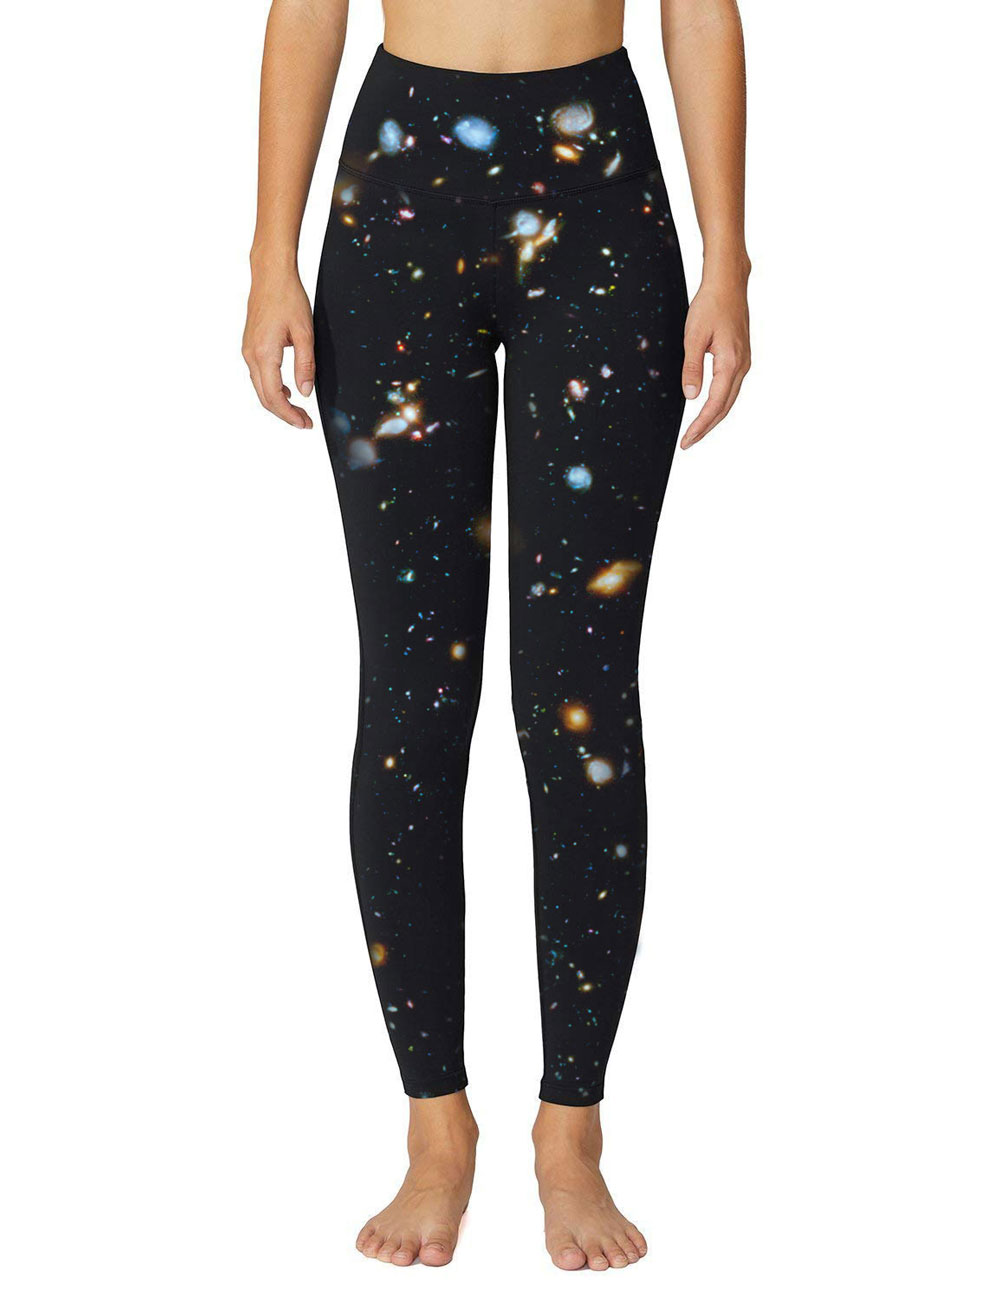 High Quality Universe Galaxies Women's Digital Printed Yoga Capris High Waist Workout Pants Moisture Wicking Running Leggings 1